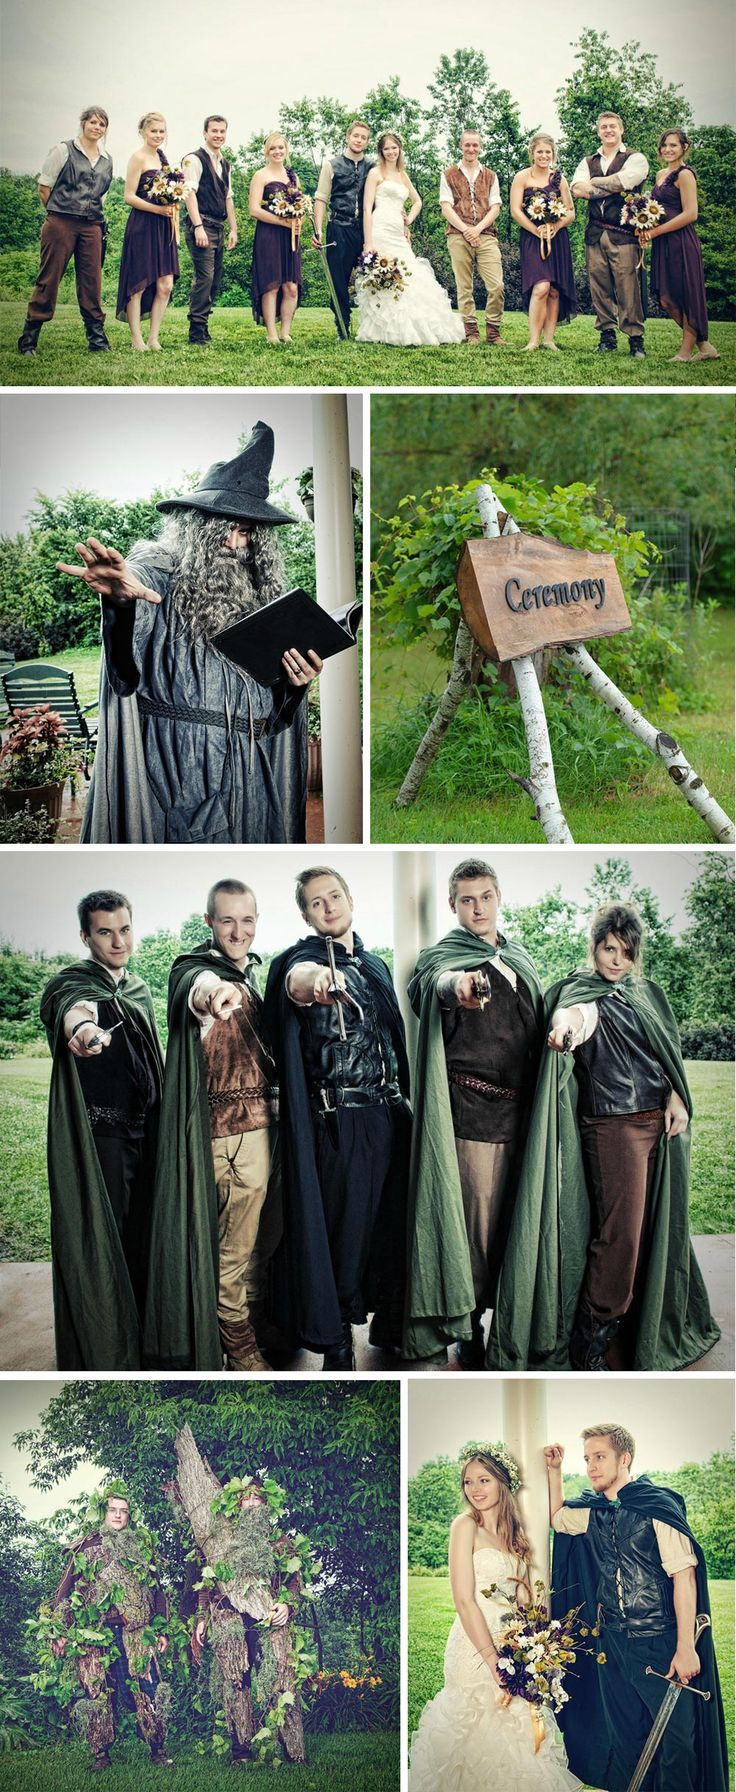 the lord of the rings themes essay Essay on lord of the rings the fellowship of the ring - the lord of the rings the fellowship of the ring in ancient times the rings of power were crafted by the elven.